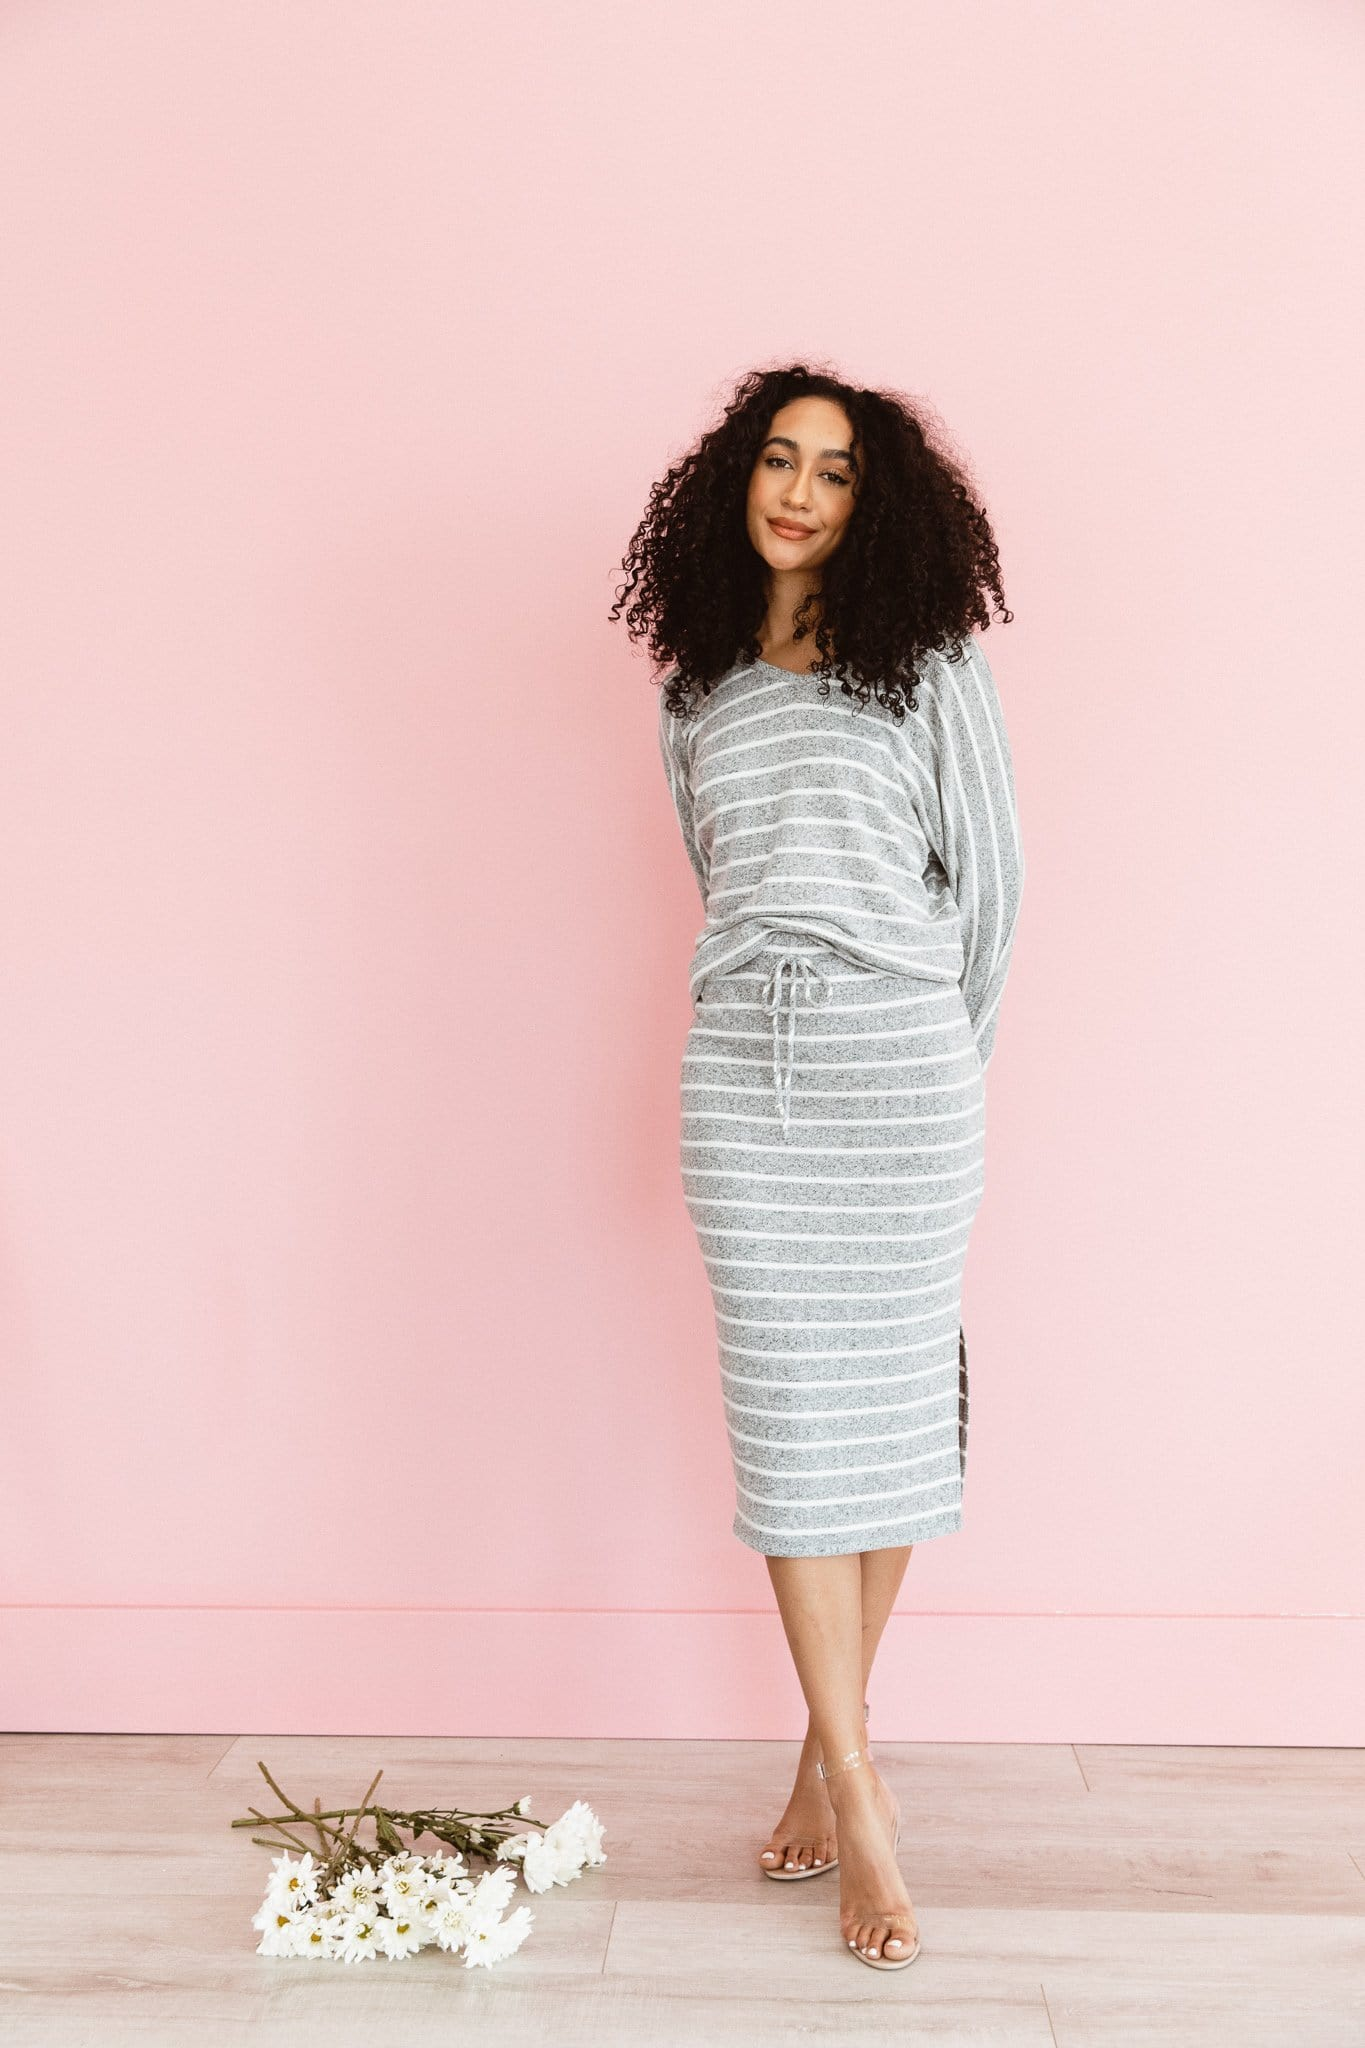 The Maddox Lounge Top and Skirt Set in Heather Grey